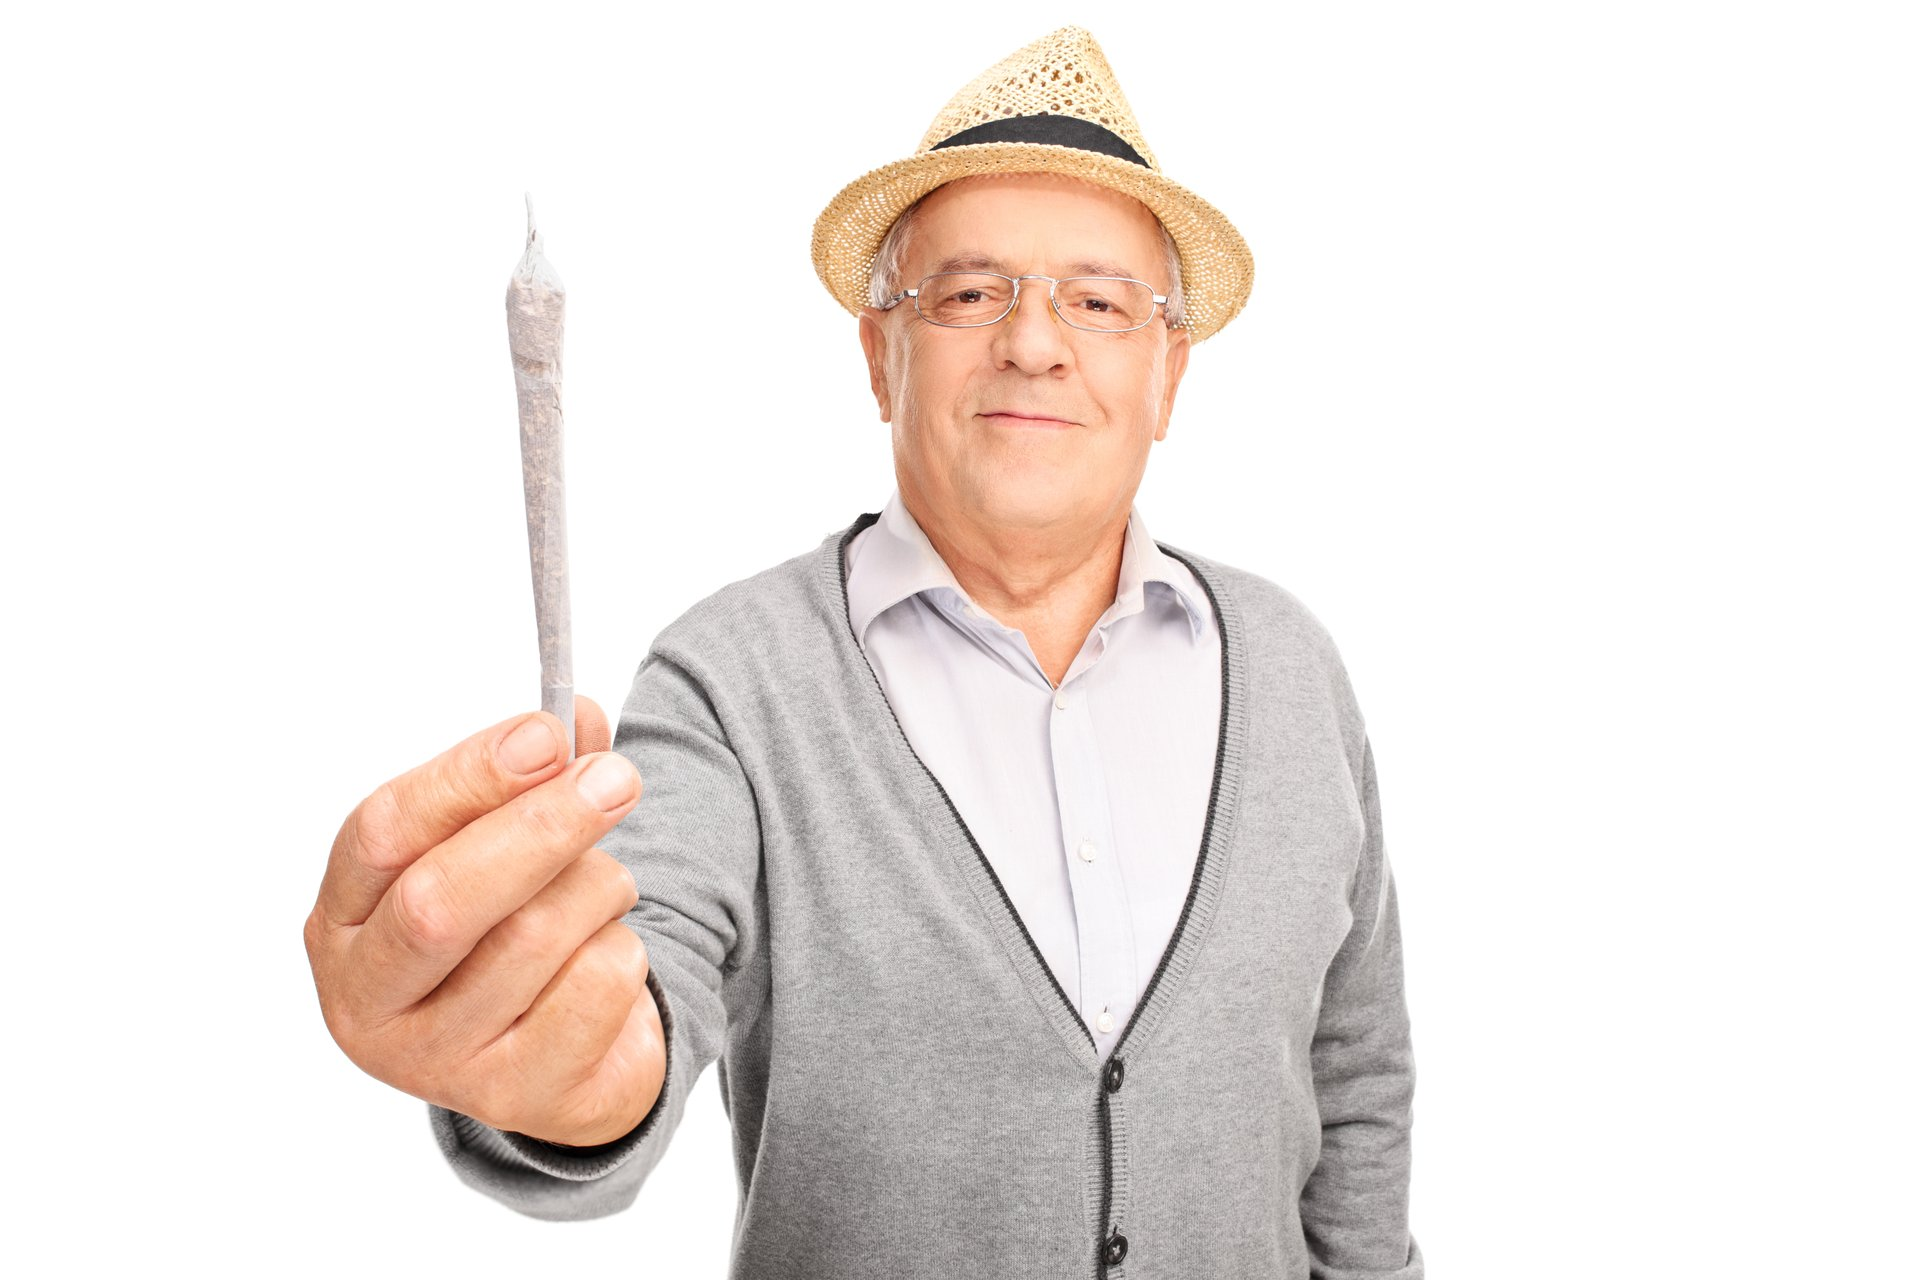 Man Senior Marijuana